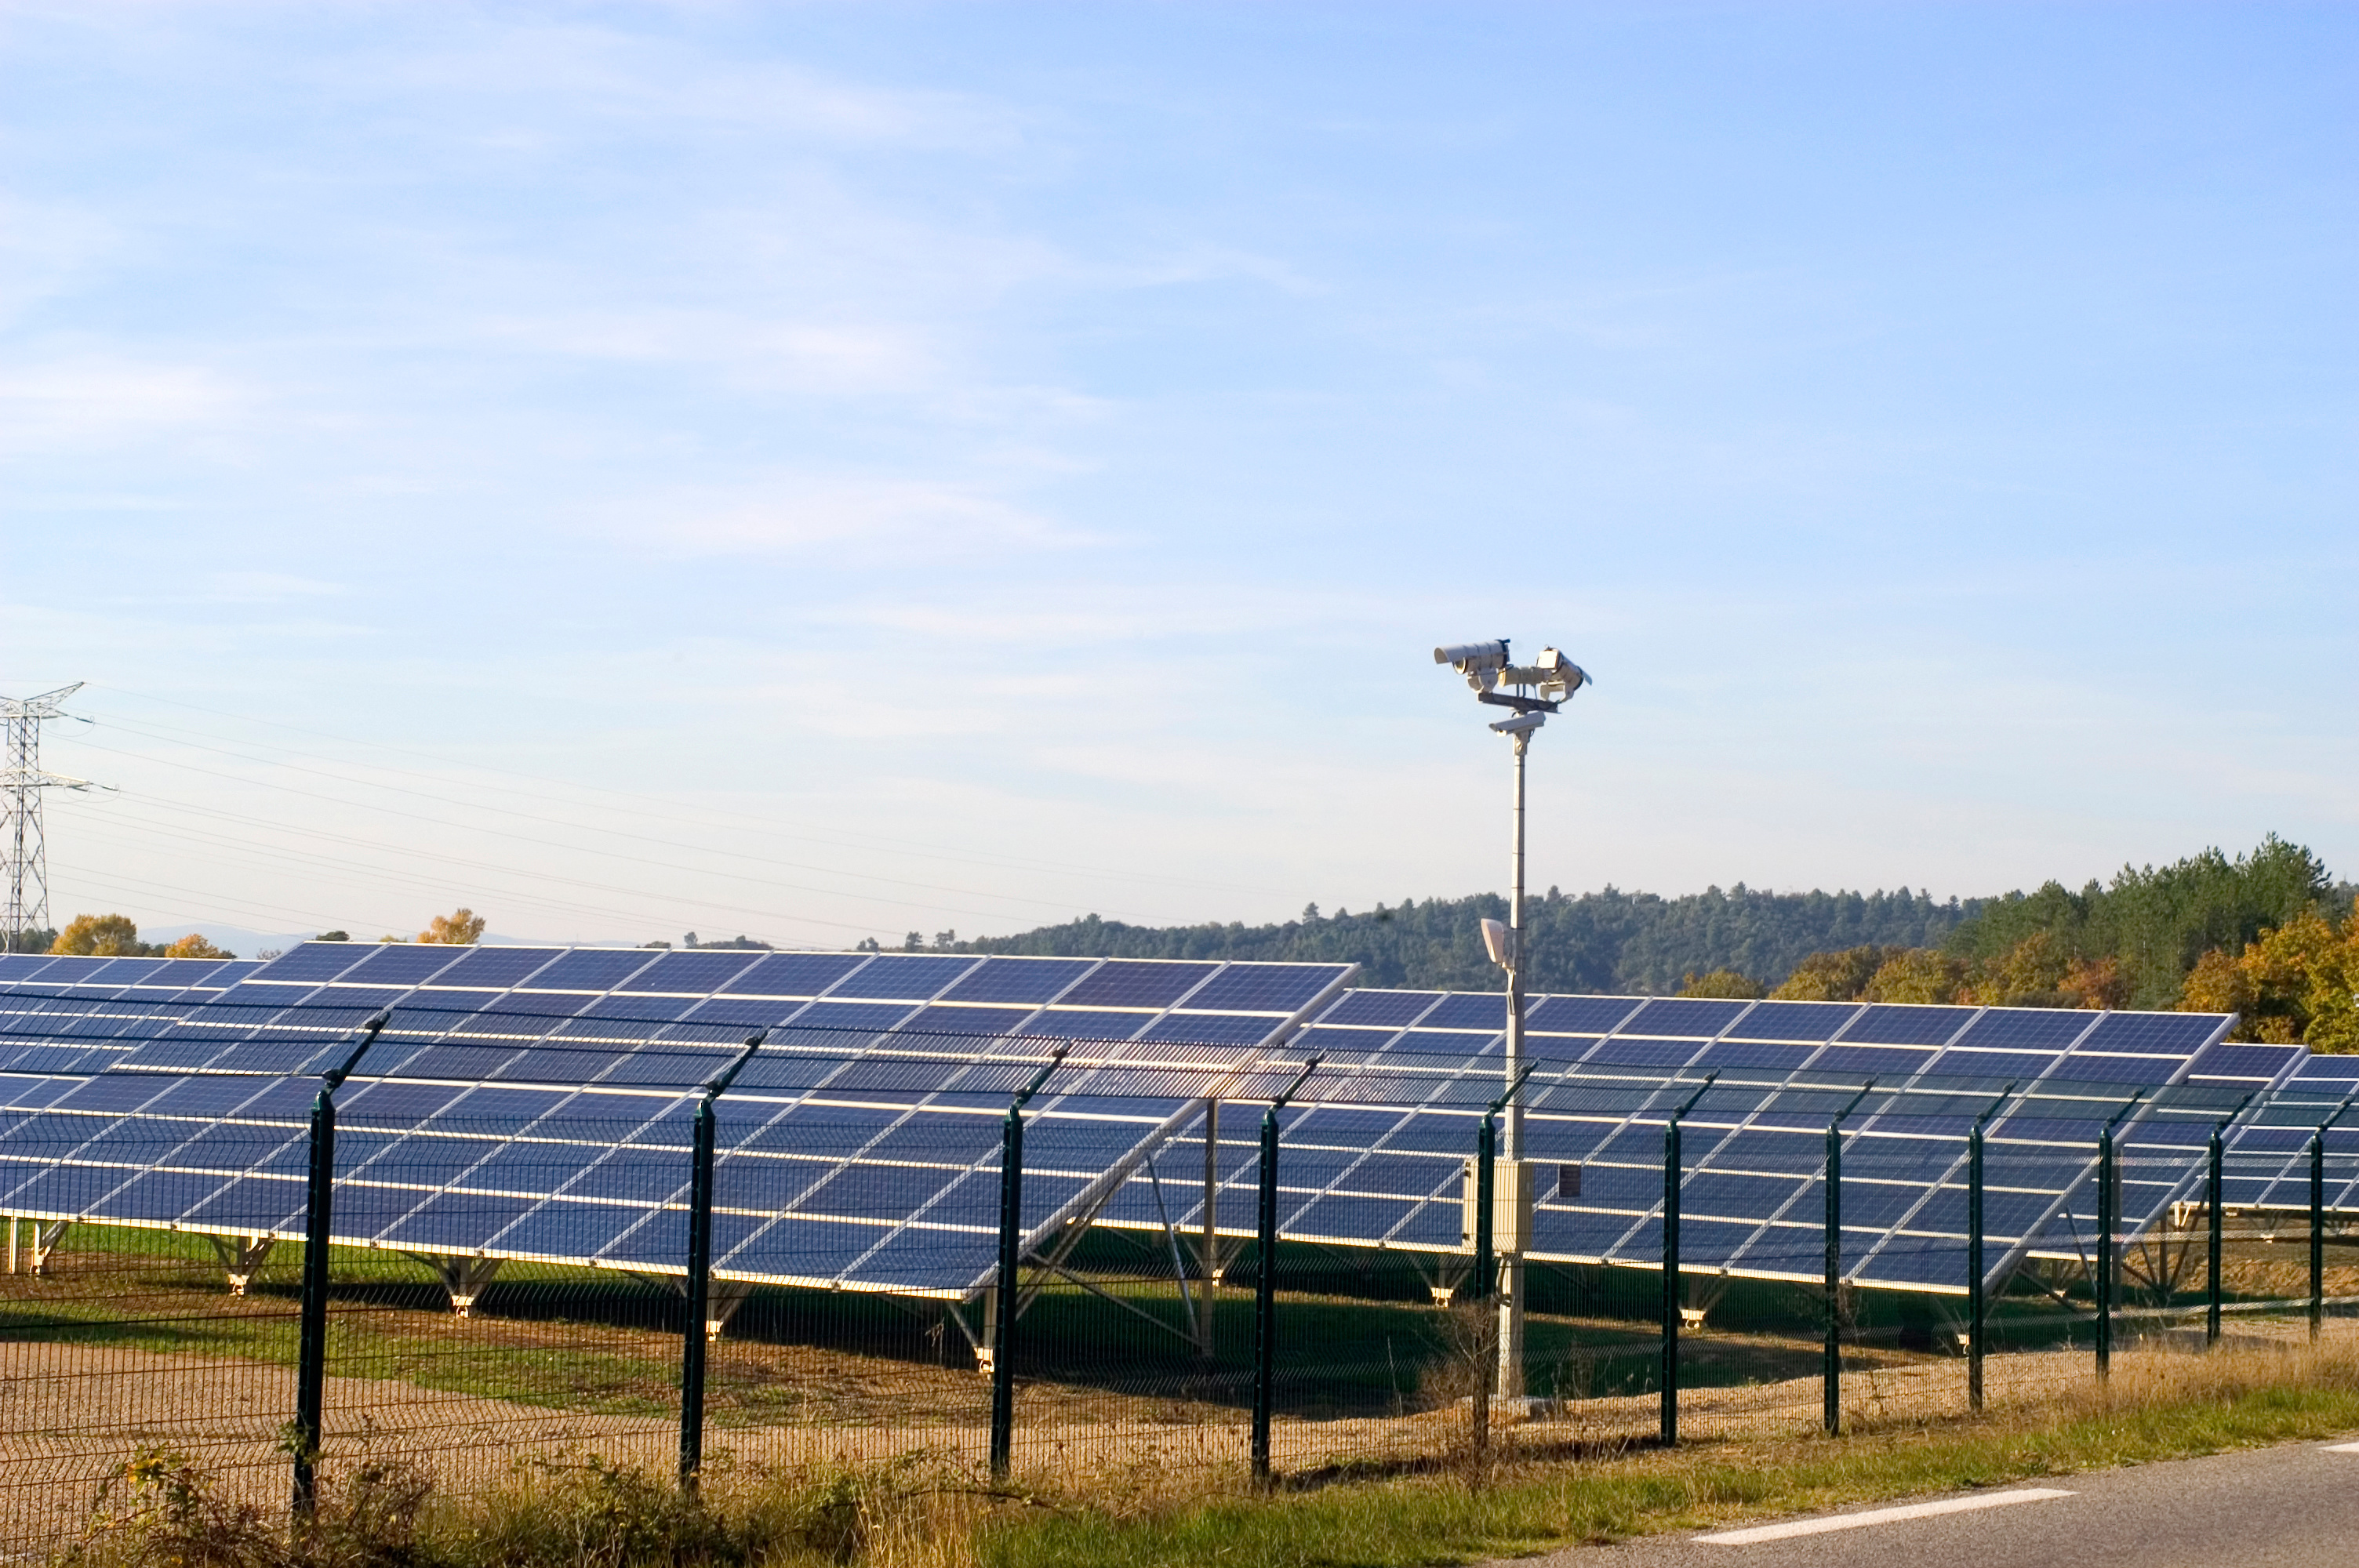 SOLAR ENERGY SECURITY PLANTS